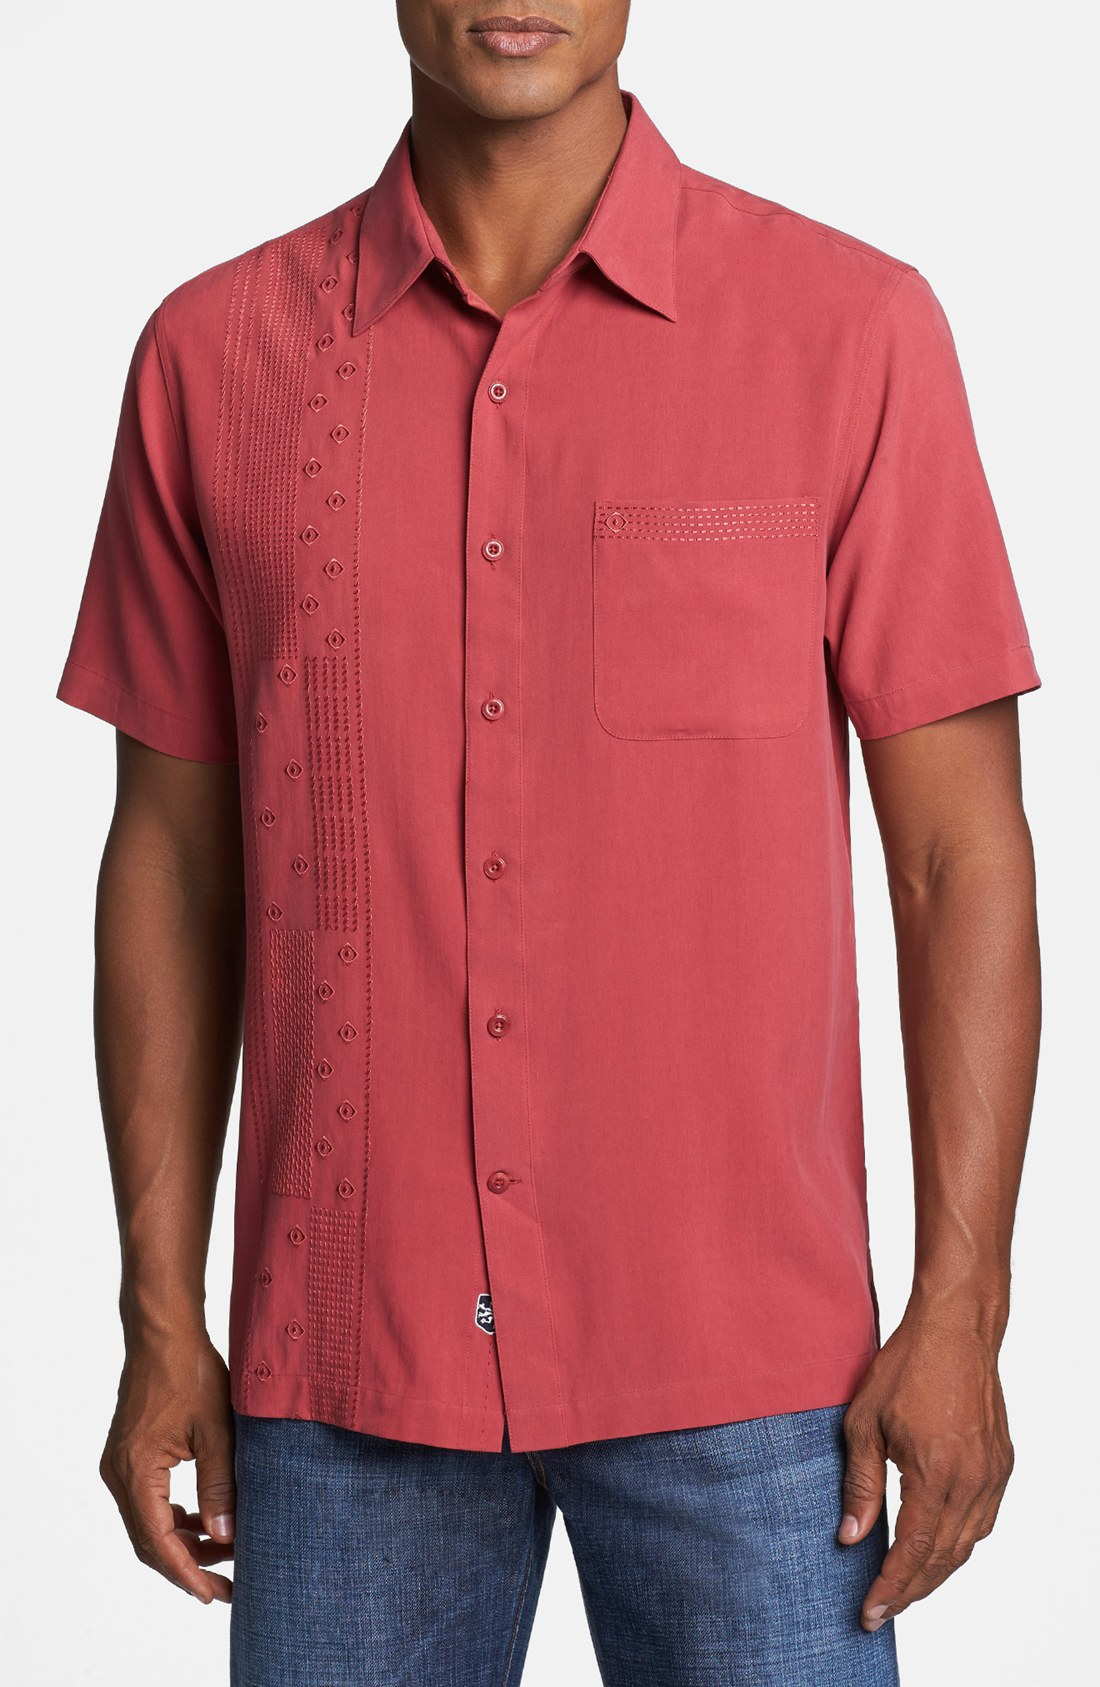 Home > Articles > Fashionable Men's Silk Shirts Fashionable Men's Silk Shirts. A Silk shirt is a piece of clothing for the trunk of the body. It is a garment for the upper part of the body, typically having a collar, cuffs, sleeves, and a front opening.